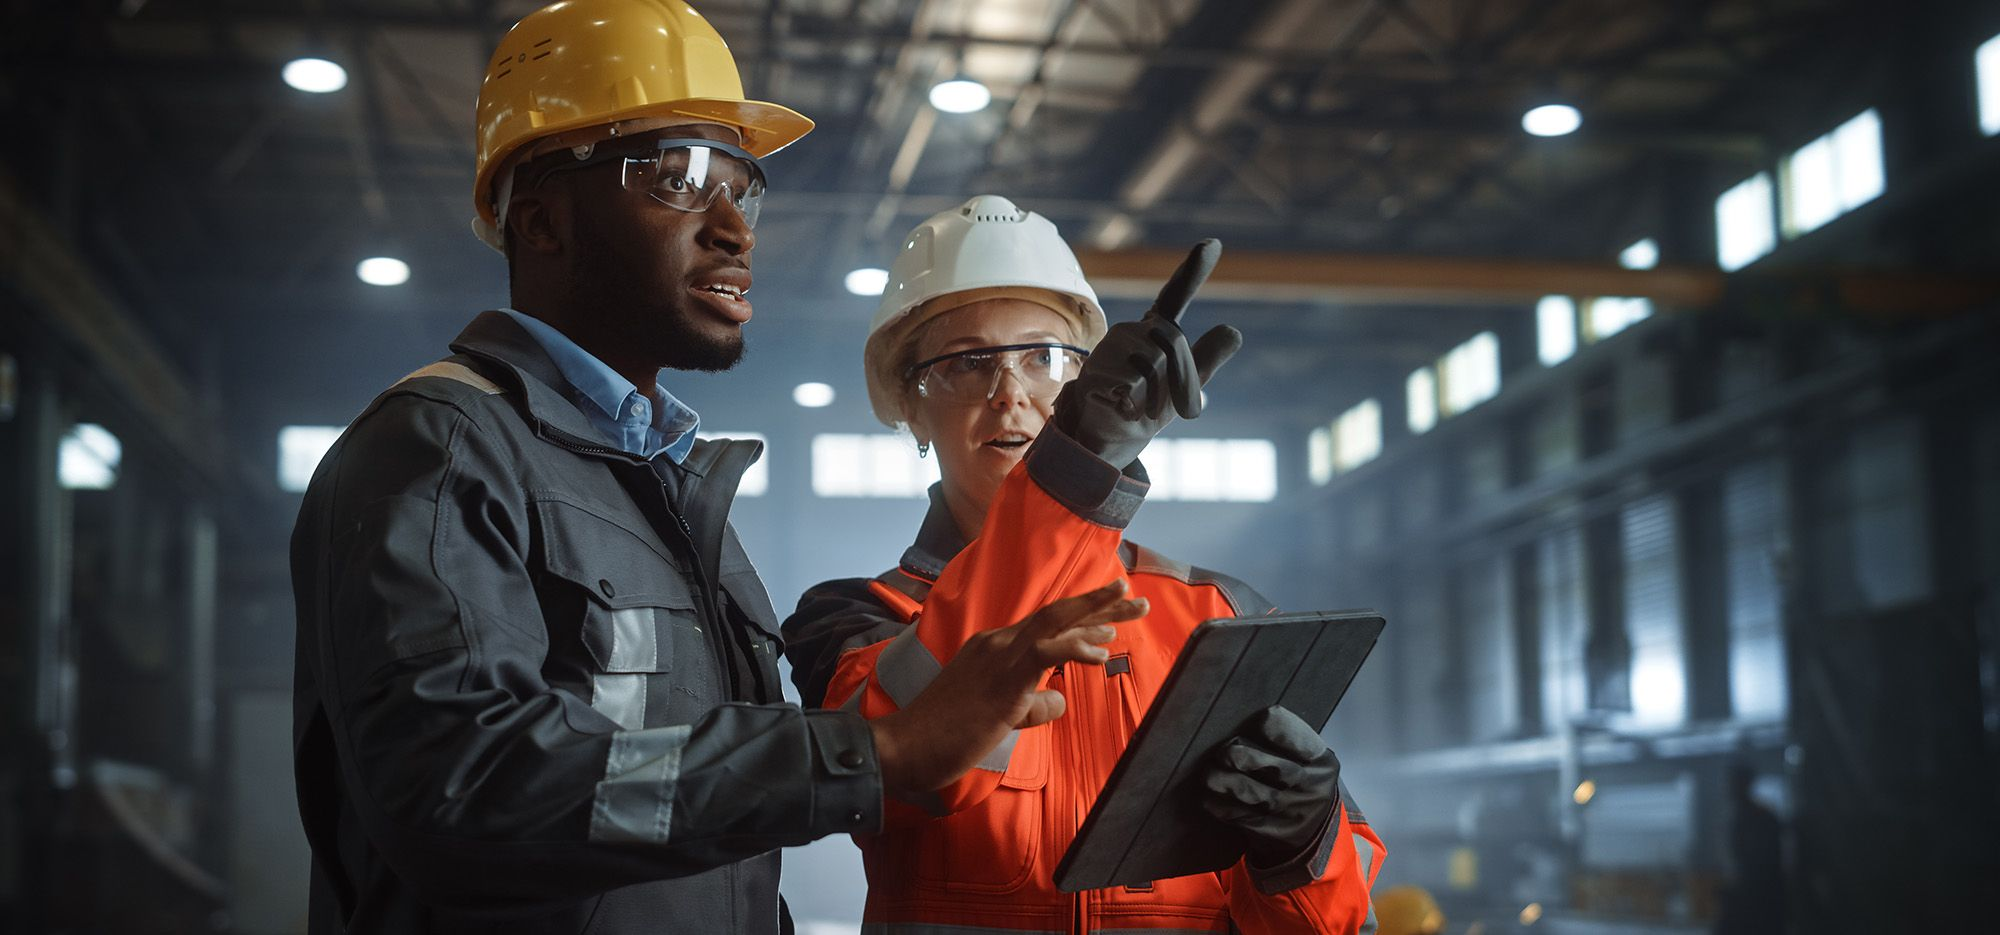 woman-and-man-inspecting-industrial-plant